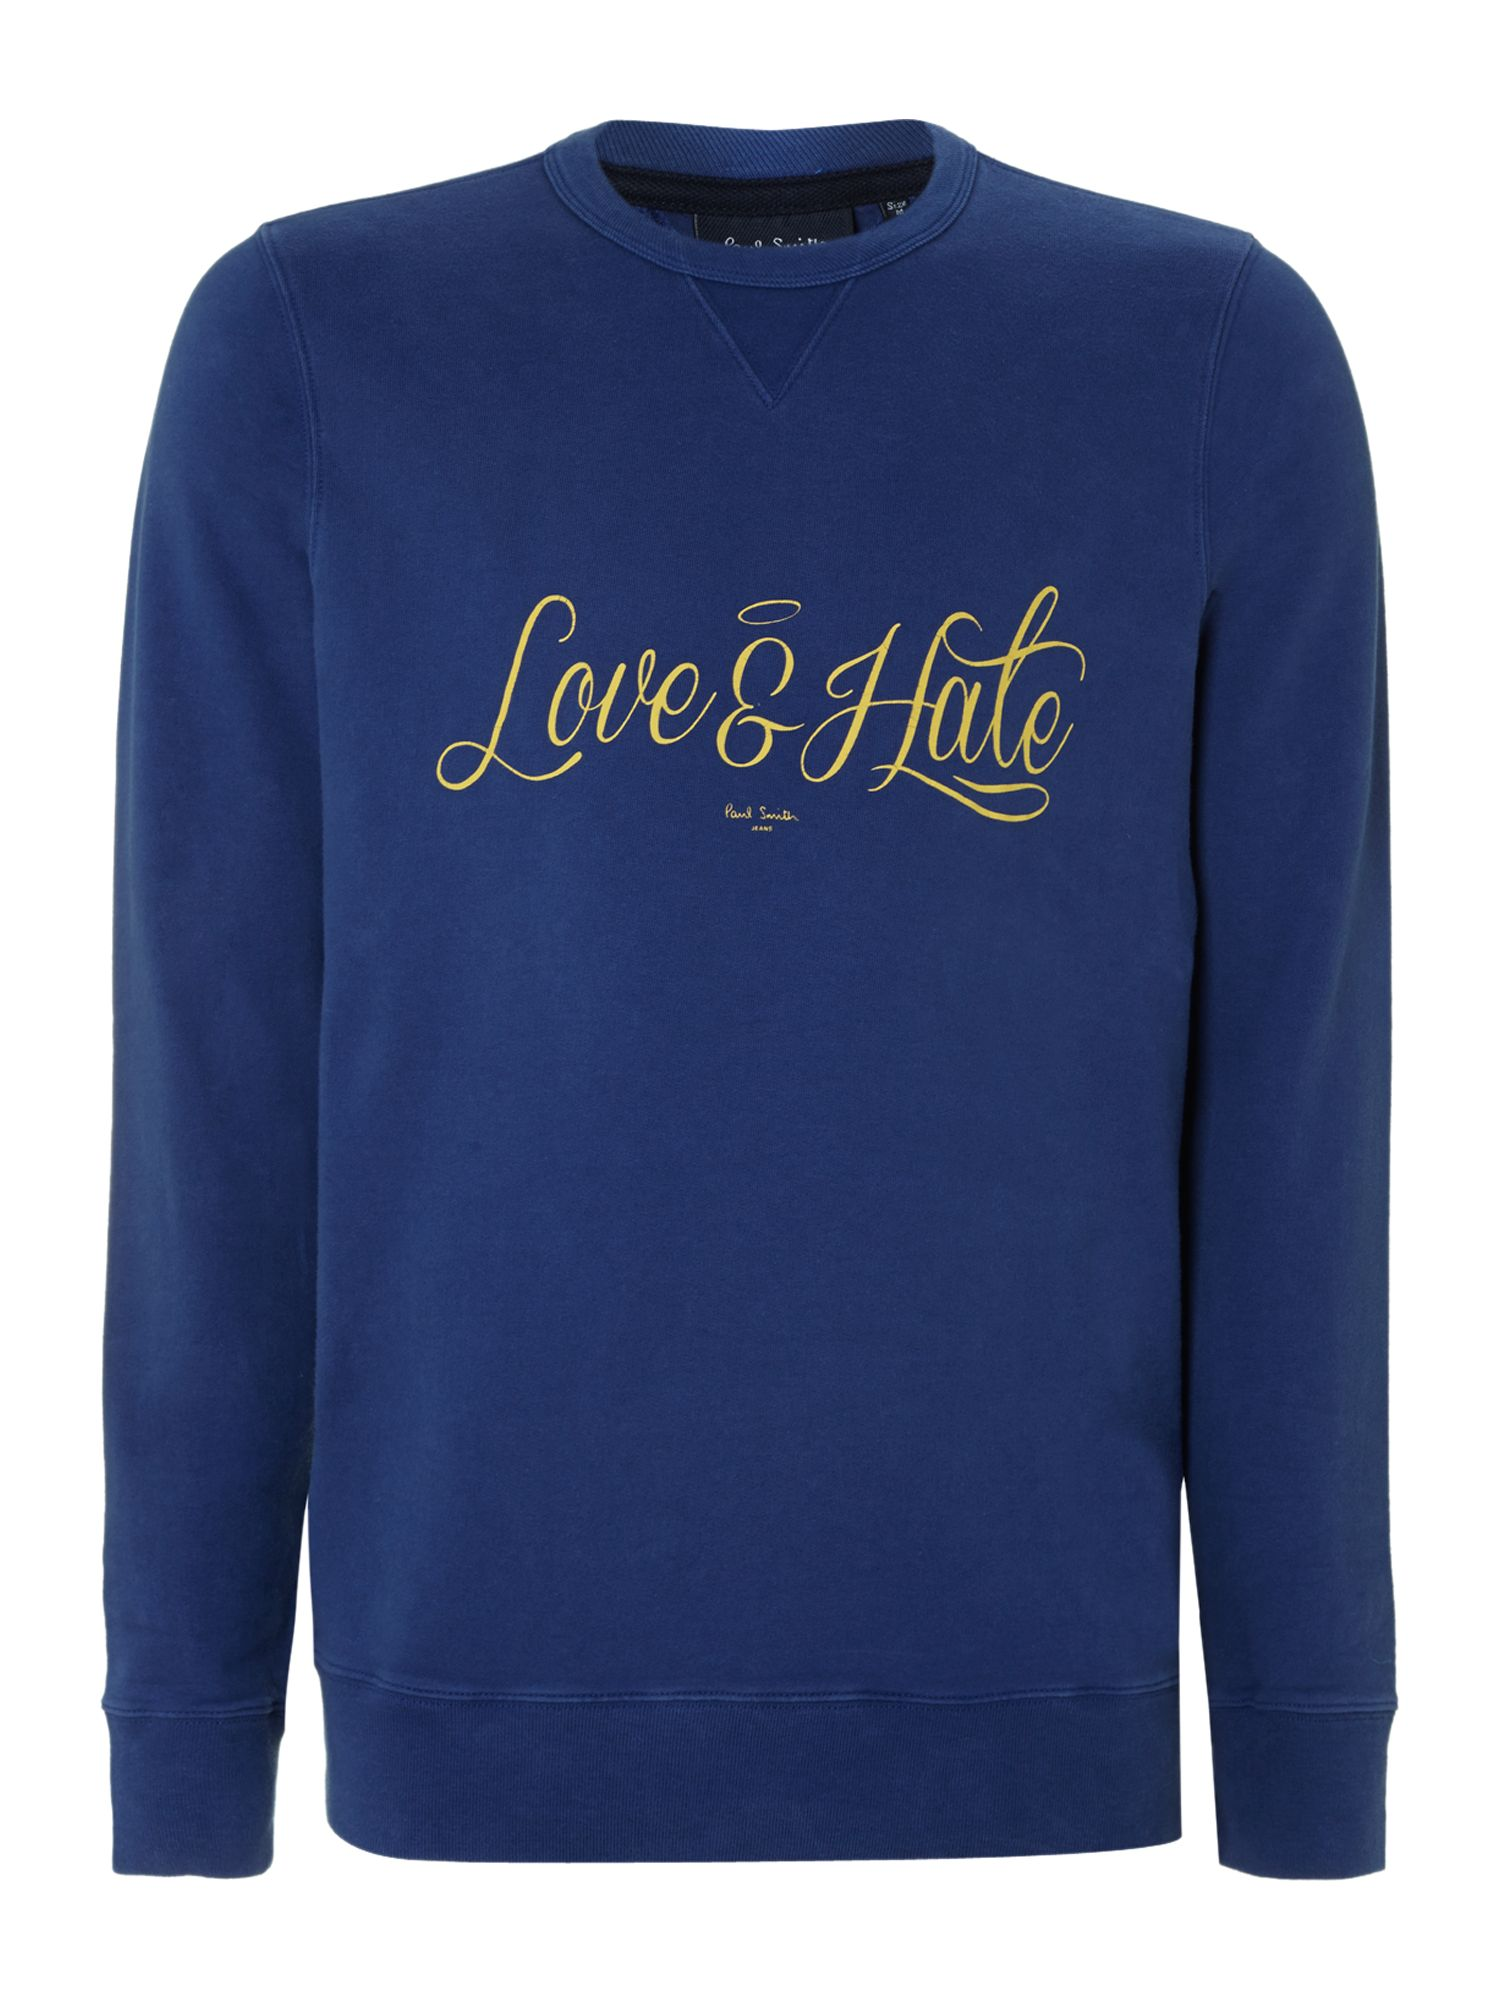 Love and hate sweatshirt